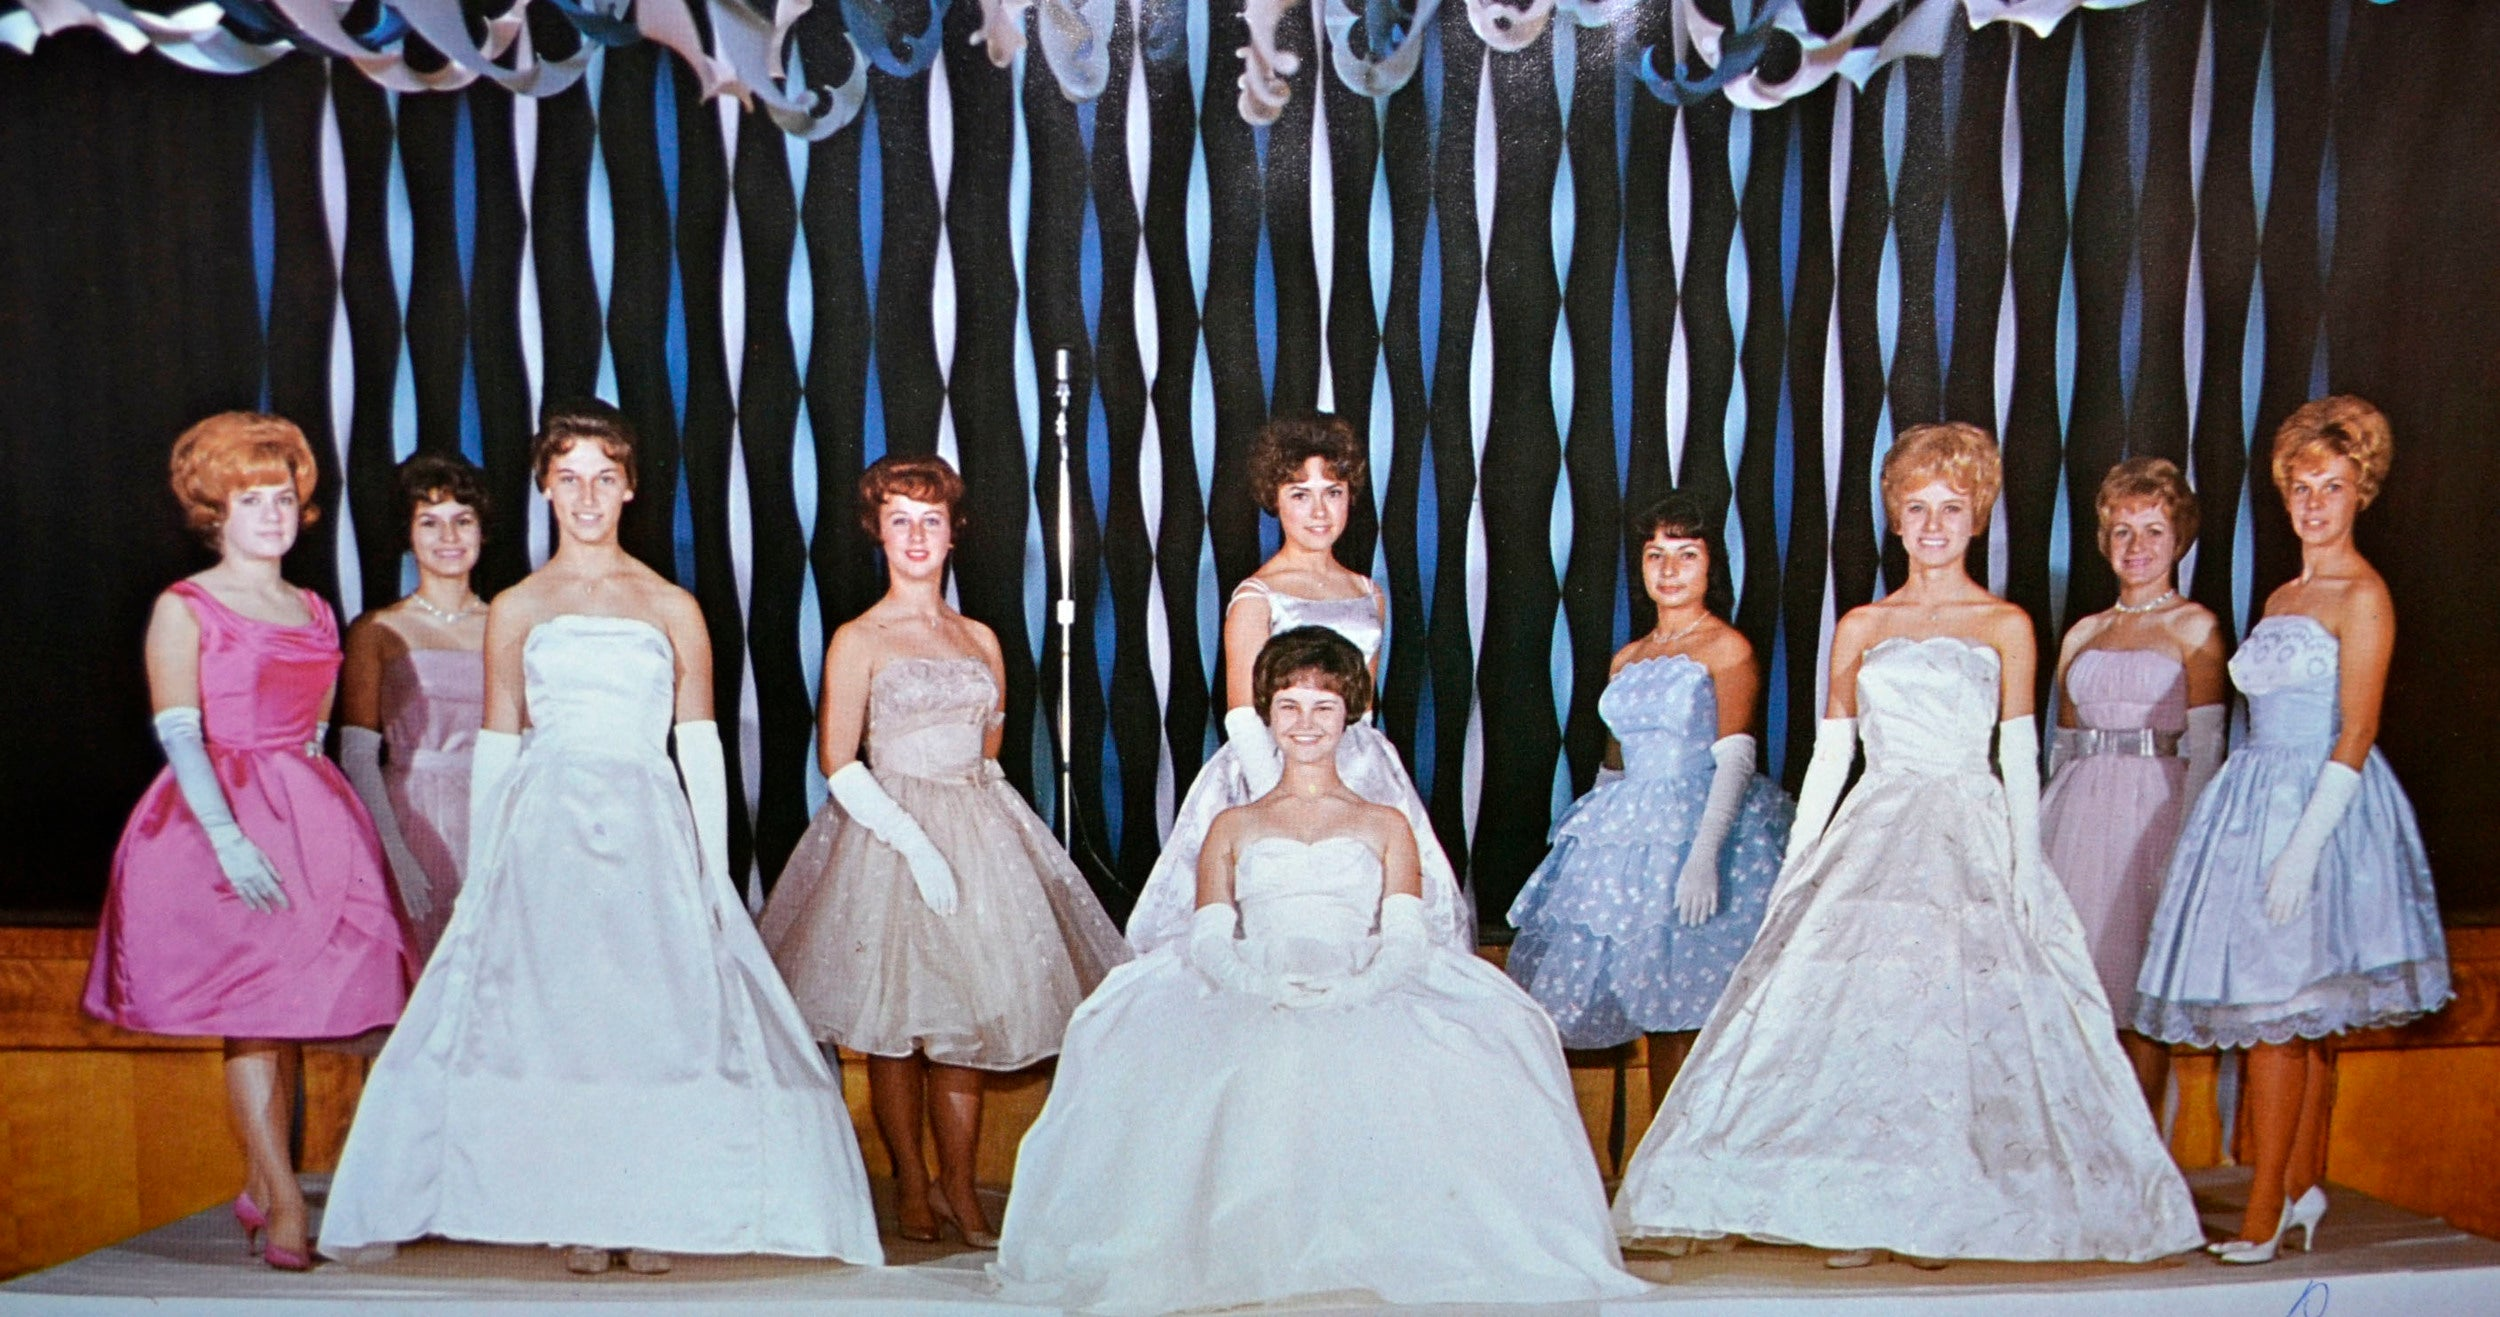 Vintage High School Prom Queen and her court 1960's